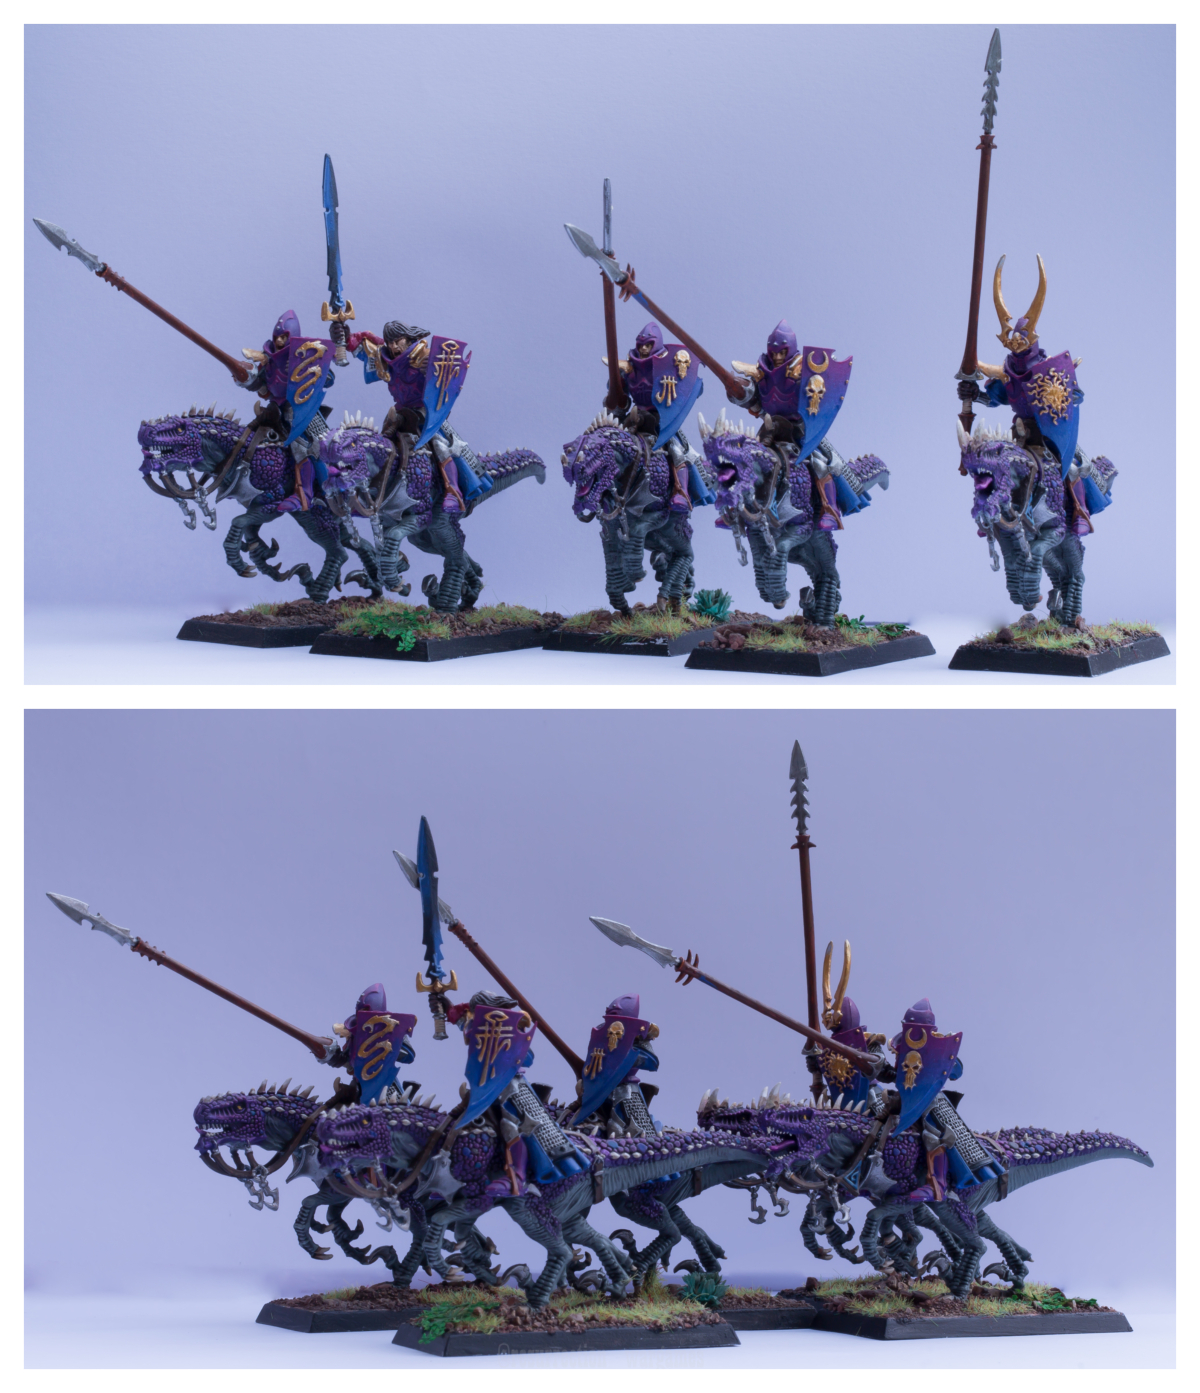 Cold one knights, Drakespawn knights